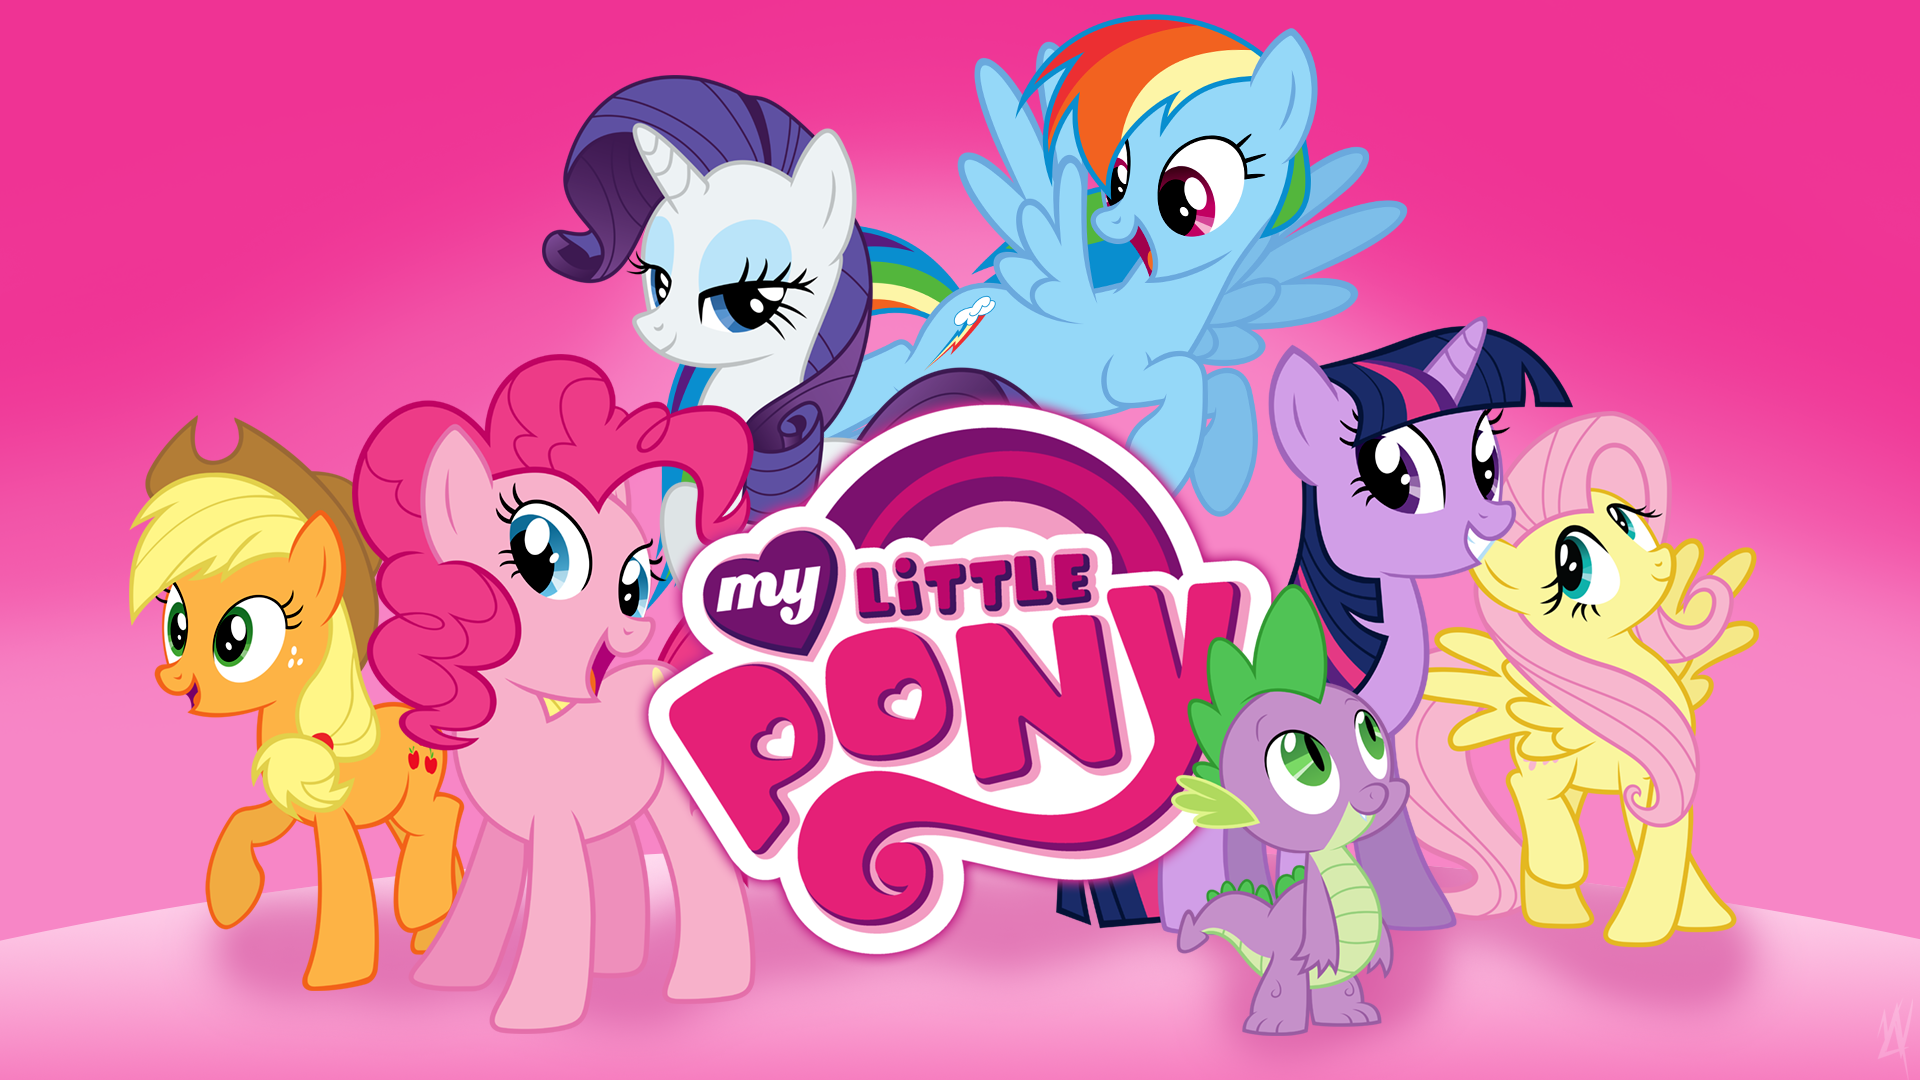 My Little Pony Wall Paper: My Little Pony HD Wallpapers For Desktop Download